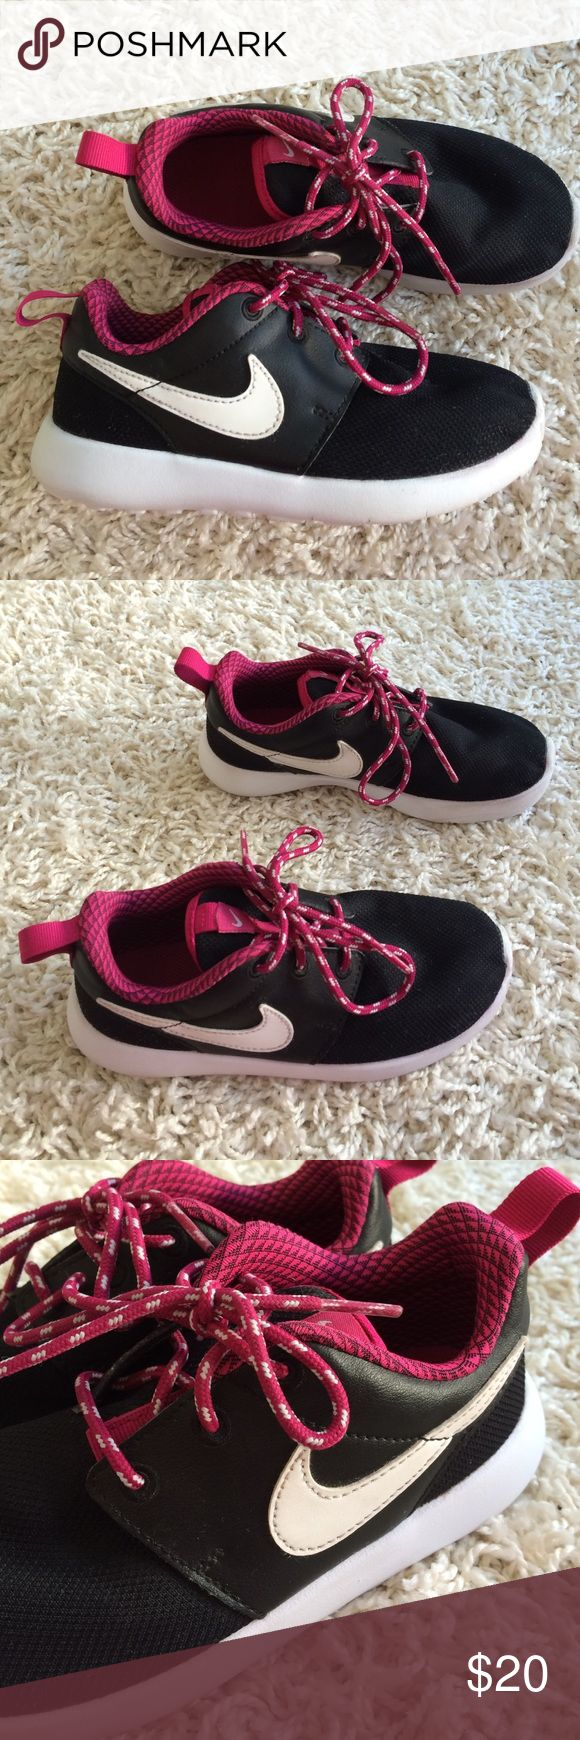 Kids (Girl's) Nike Shoe 12 Lightly used shoe size 12 Nike Shoes Sneakers